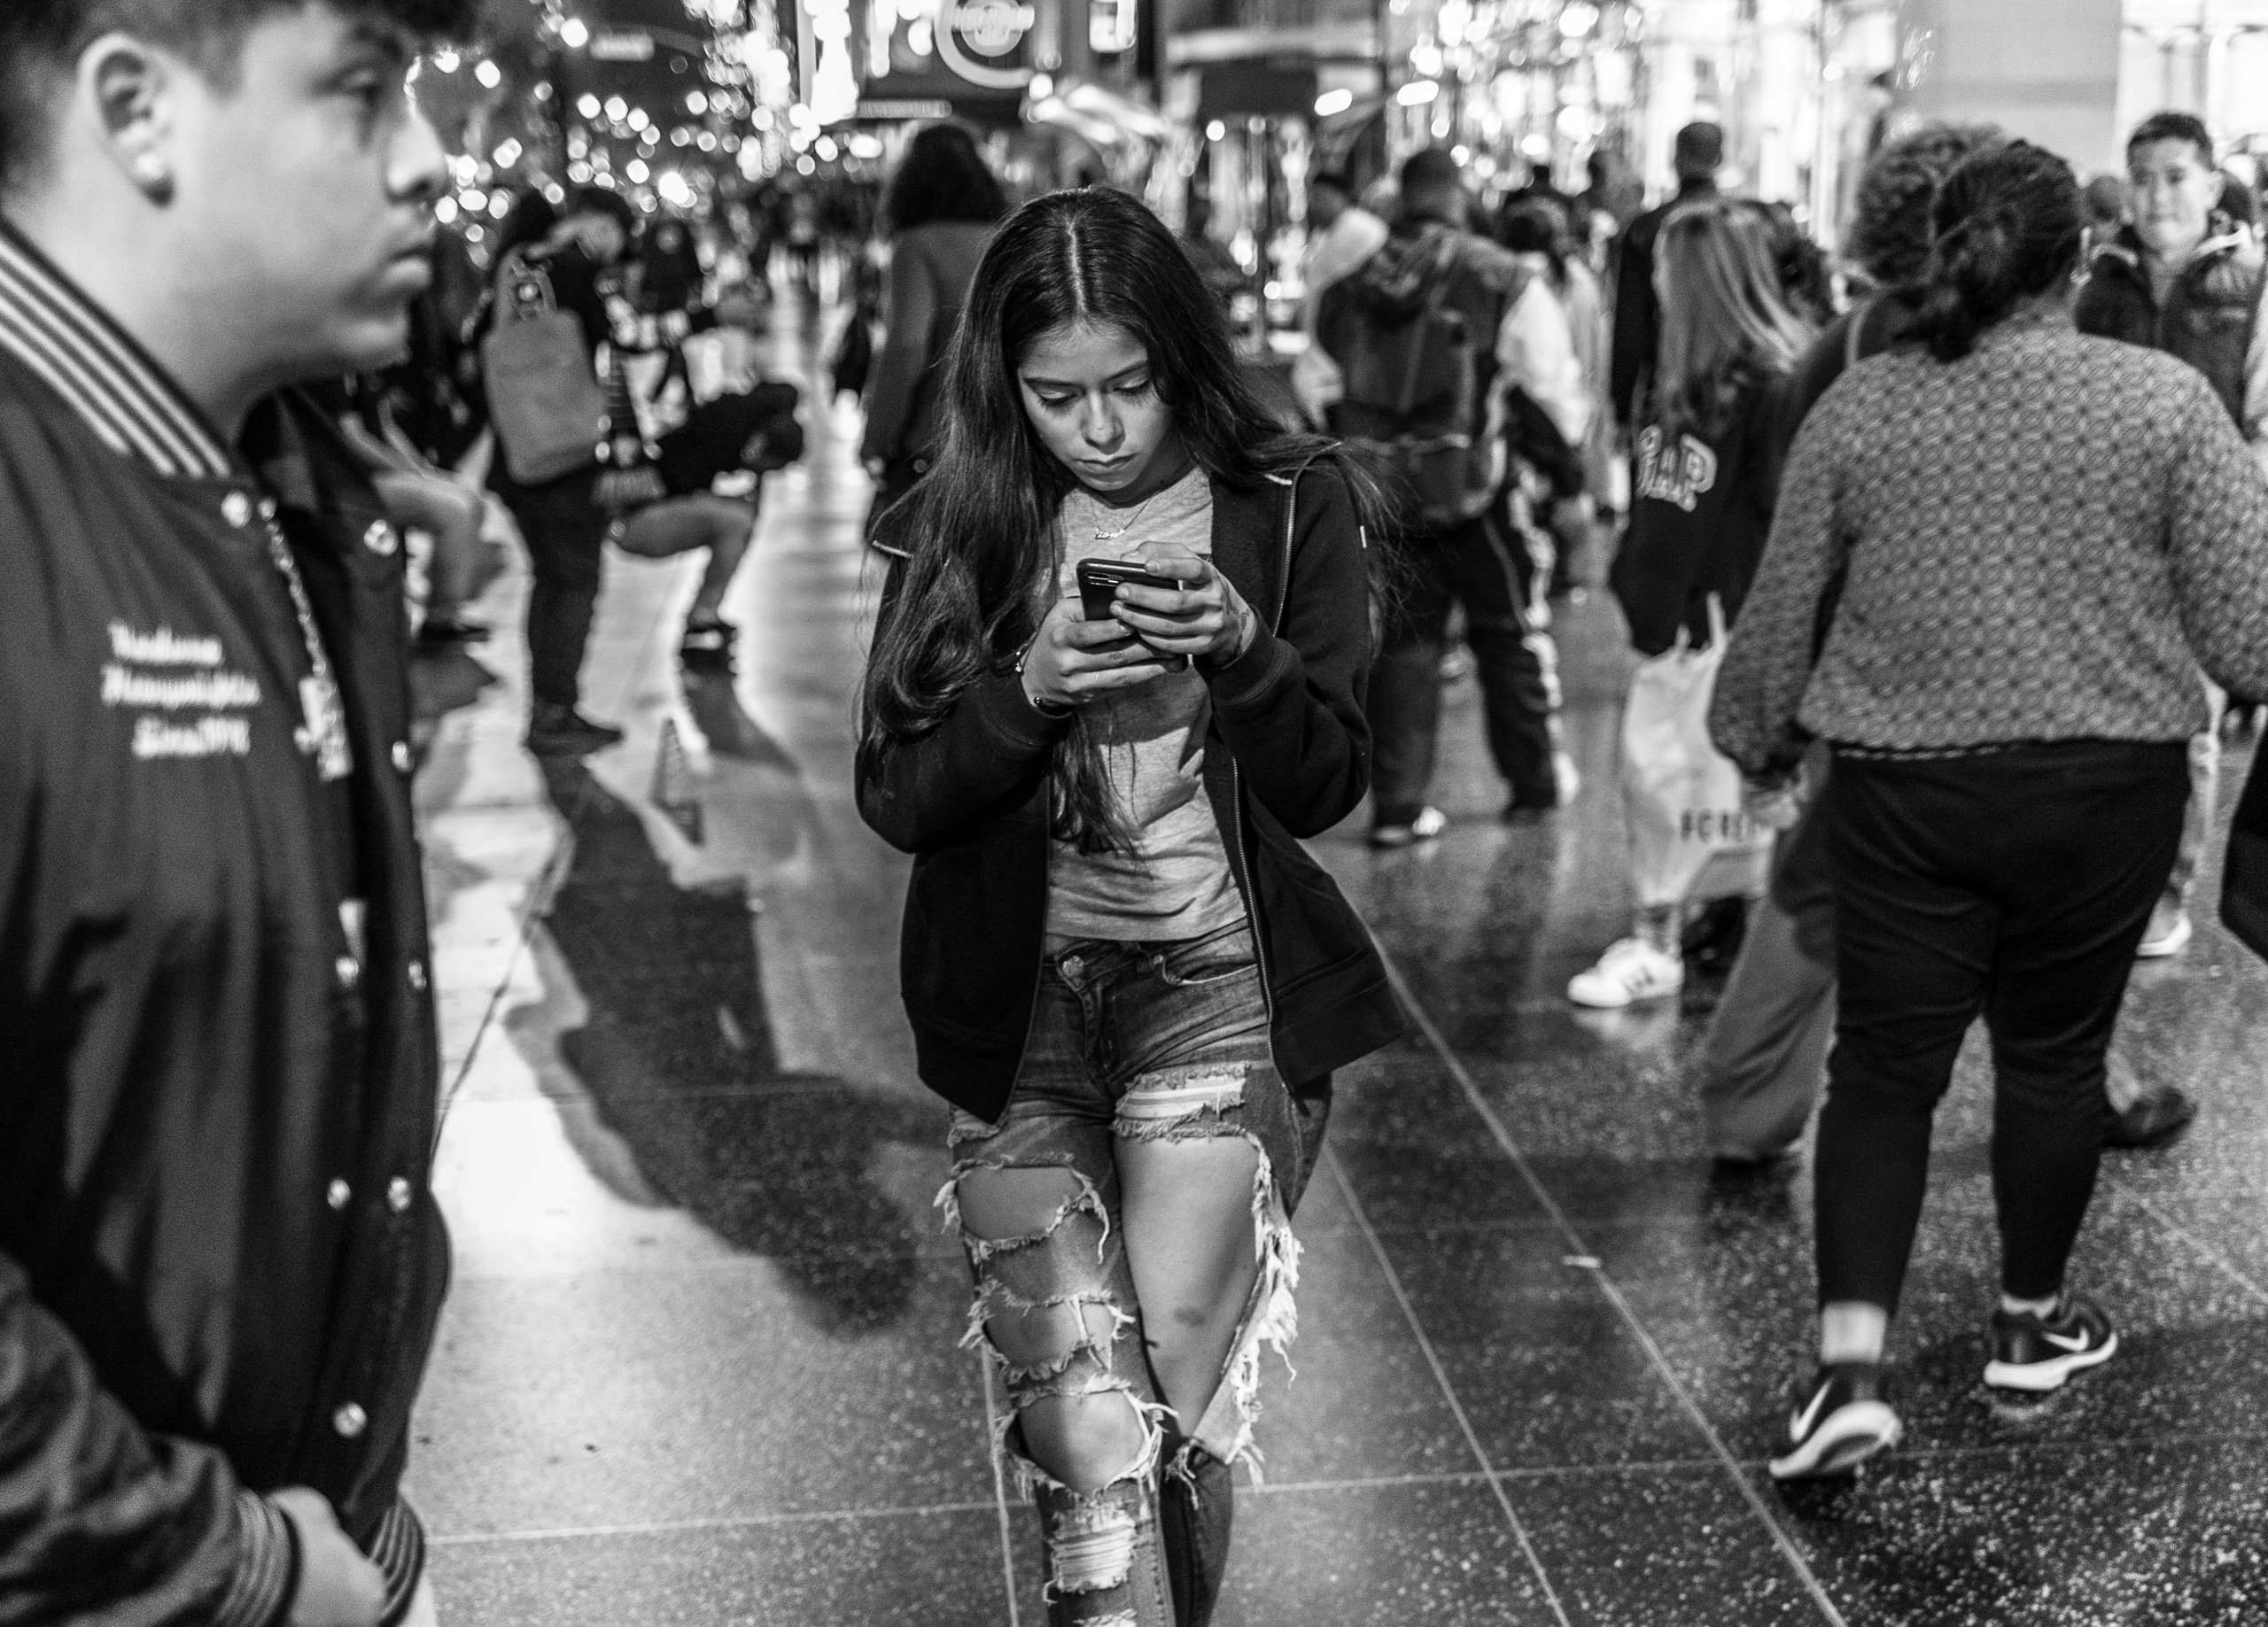 a young girl with torn jeans and a cell phone held before her face in both hands, walks down Hollywood Blvd.